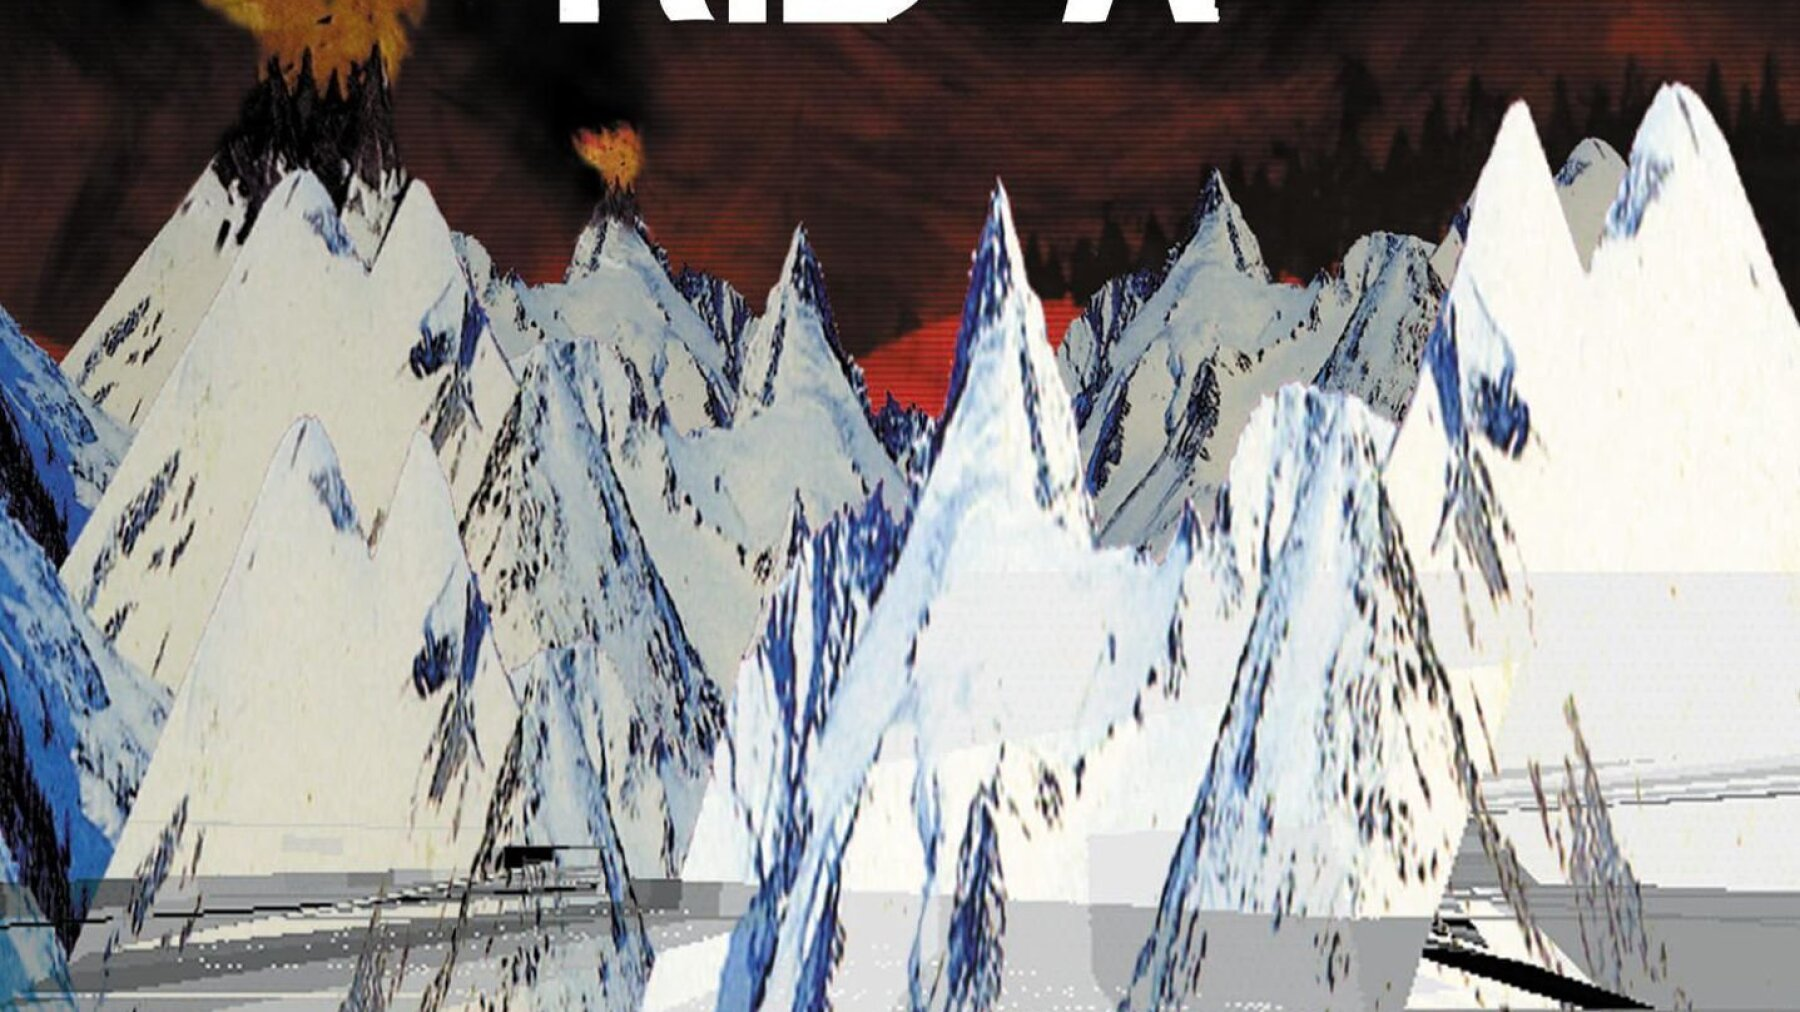 kid a radiohead essay Every diehard radiohead fan can give you a ranked list of their top albums, and classics like kid a and the bends routinely feature at the top of the list but even newer releases, like 2016's a moon shaped pool, have quickly won the hearts of even the most veteran radiohead listeners.